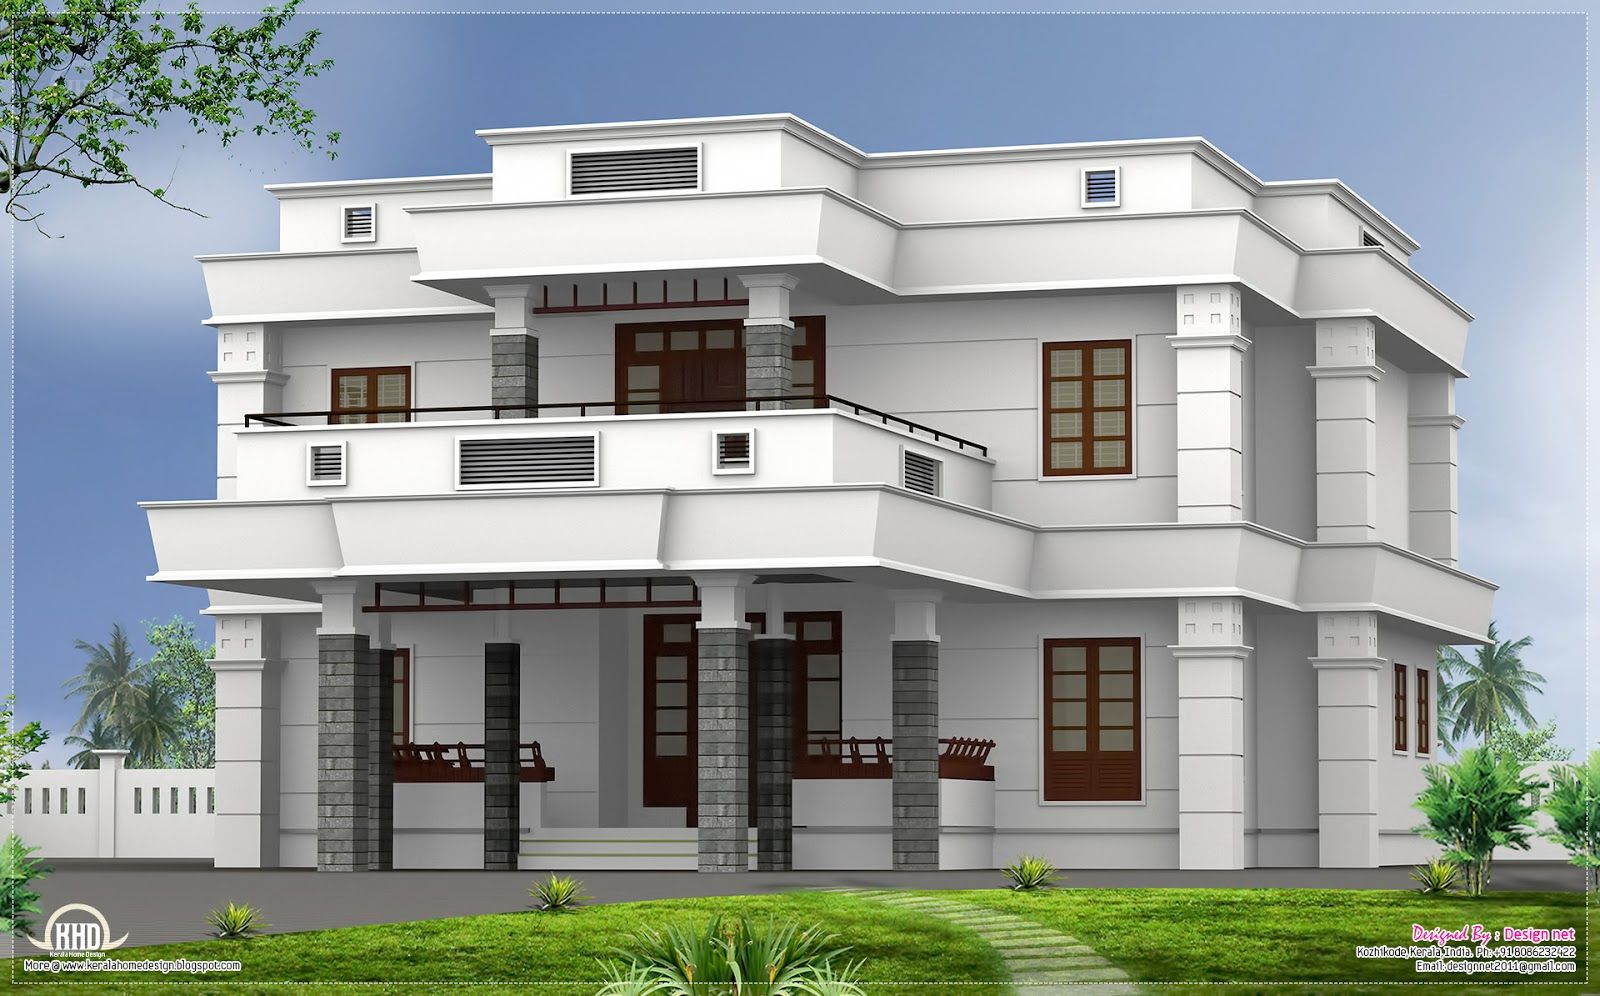 Bhk modern flat roof house design kerala